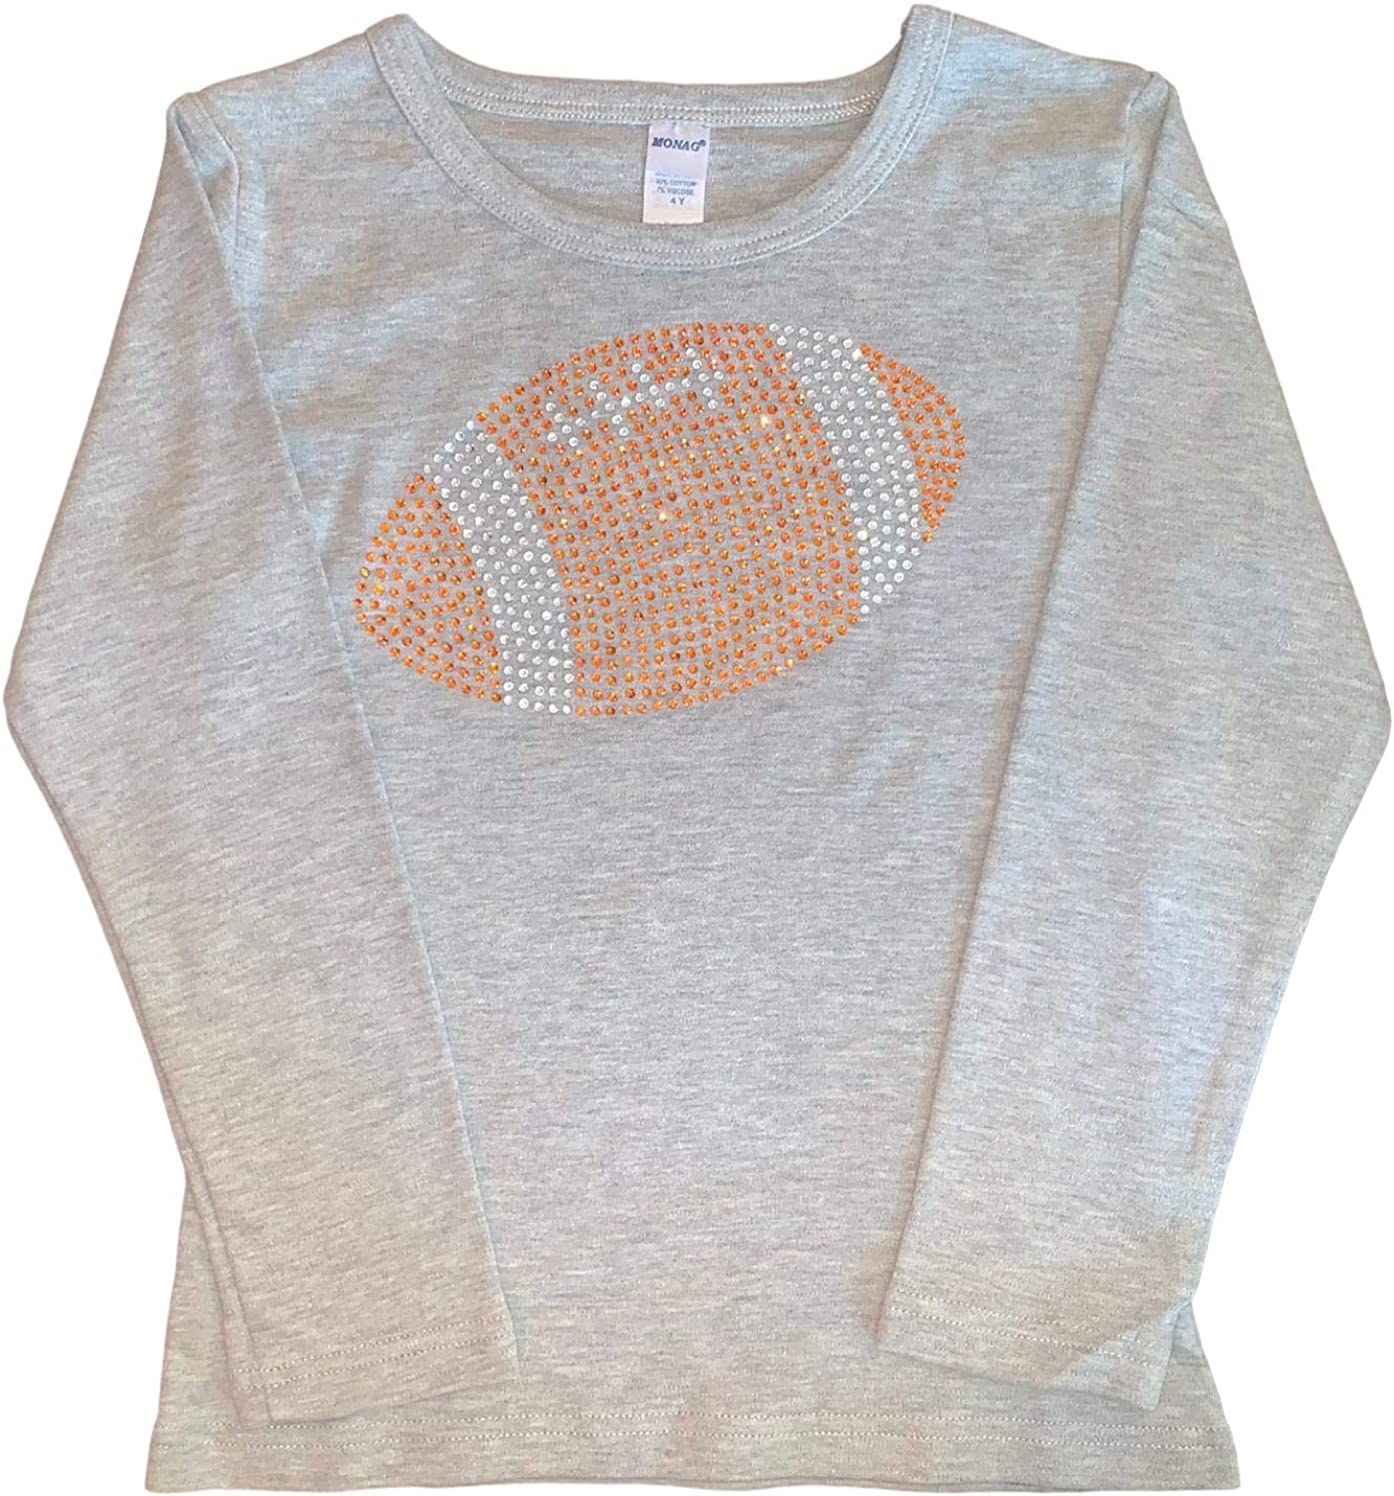 FanGarb Bedazzled Rhinestone Holiday Tee 2T-12yr